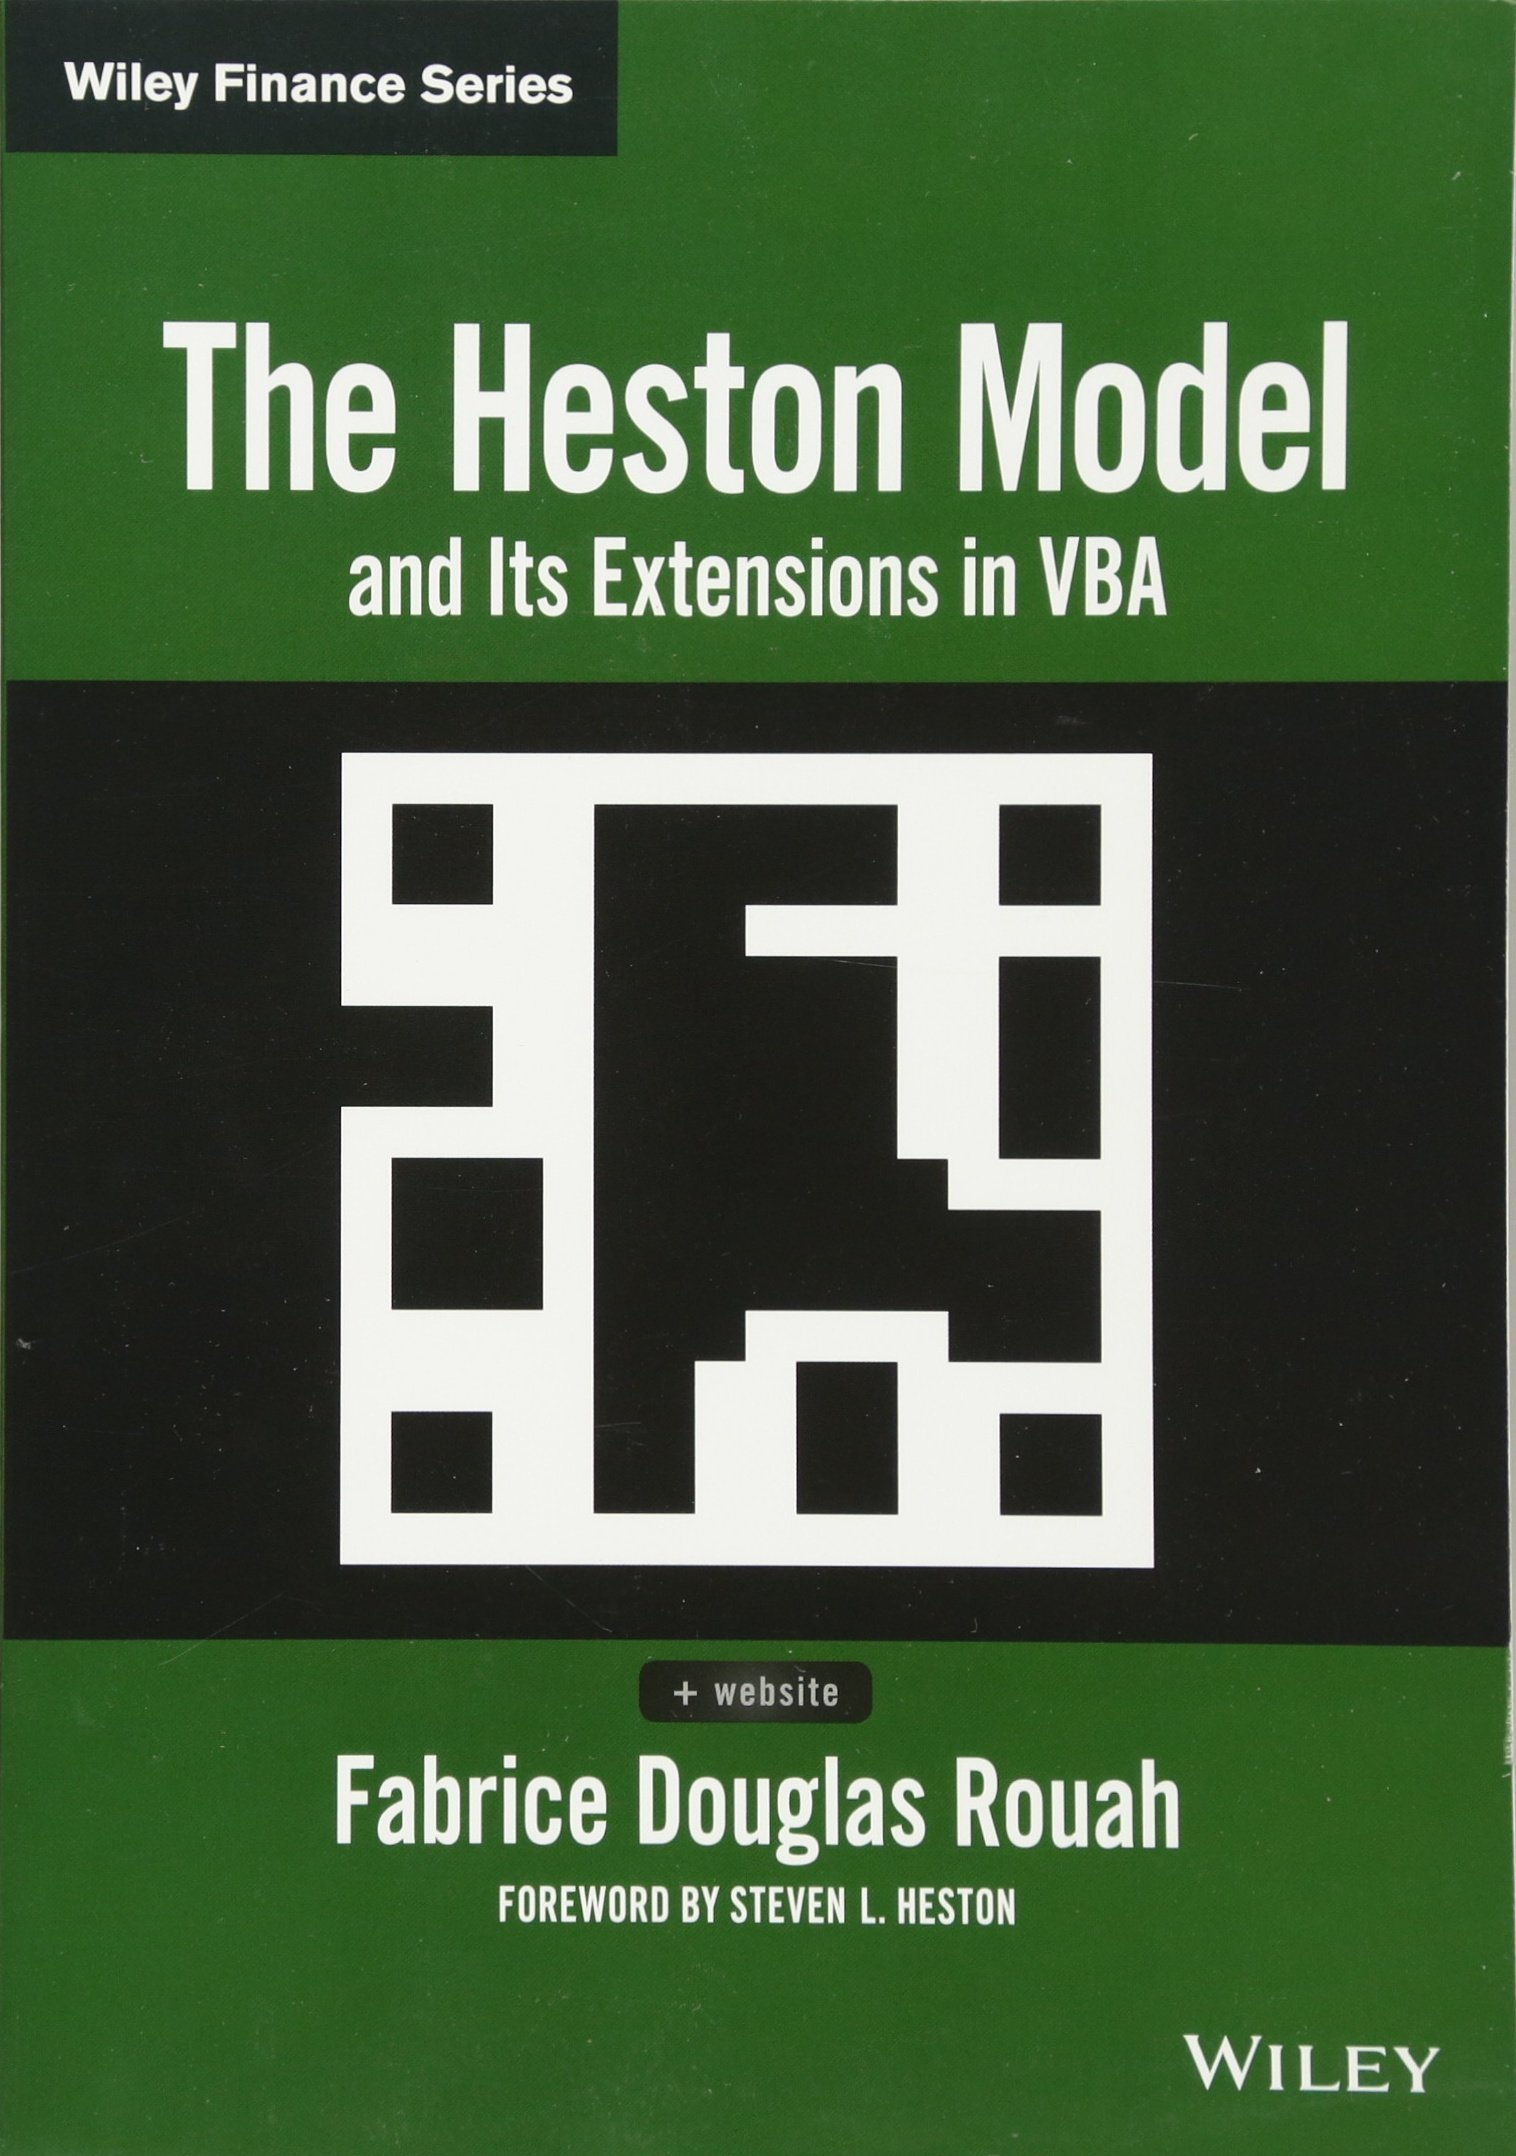 Amazon fr the heston model and its extensions in vba fabrice d rouah steven l heston livres